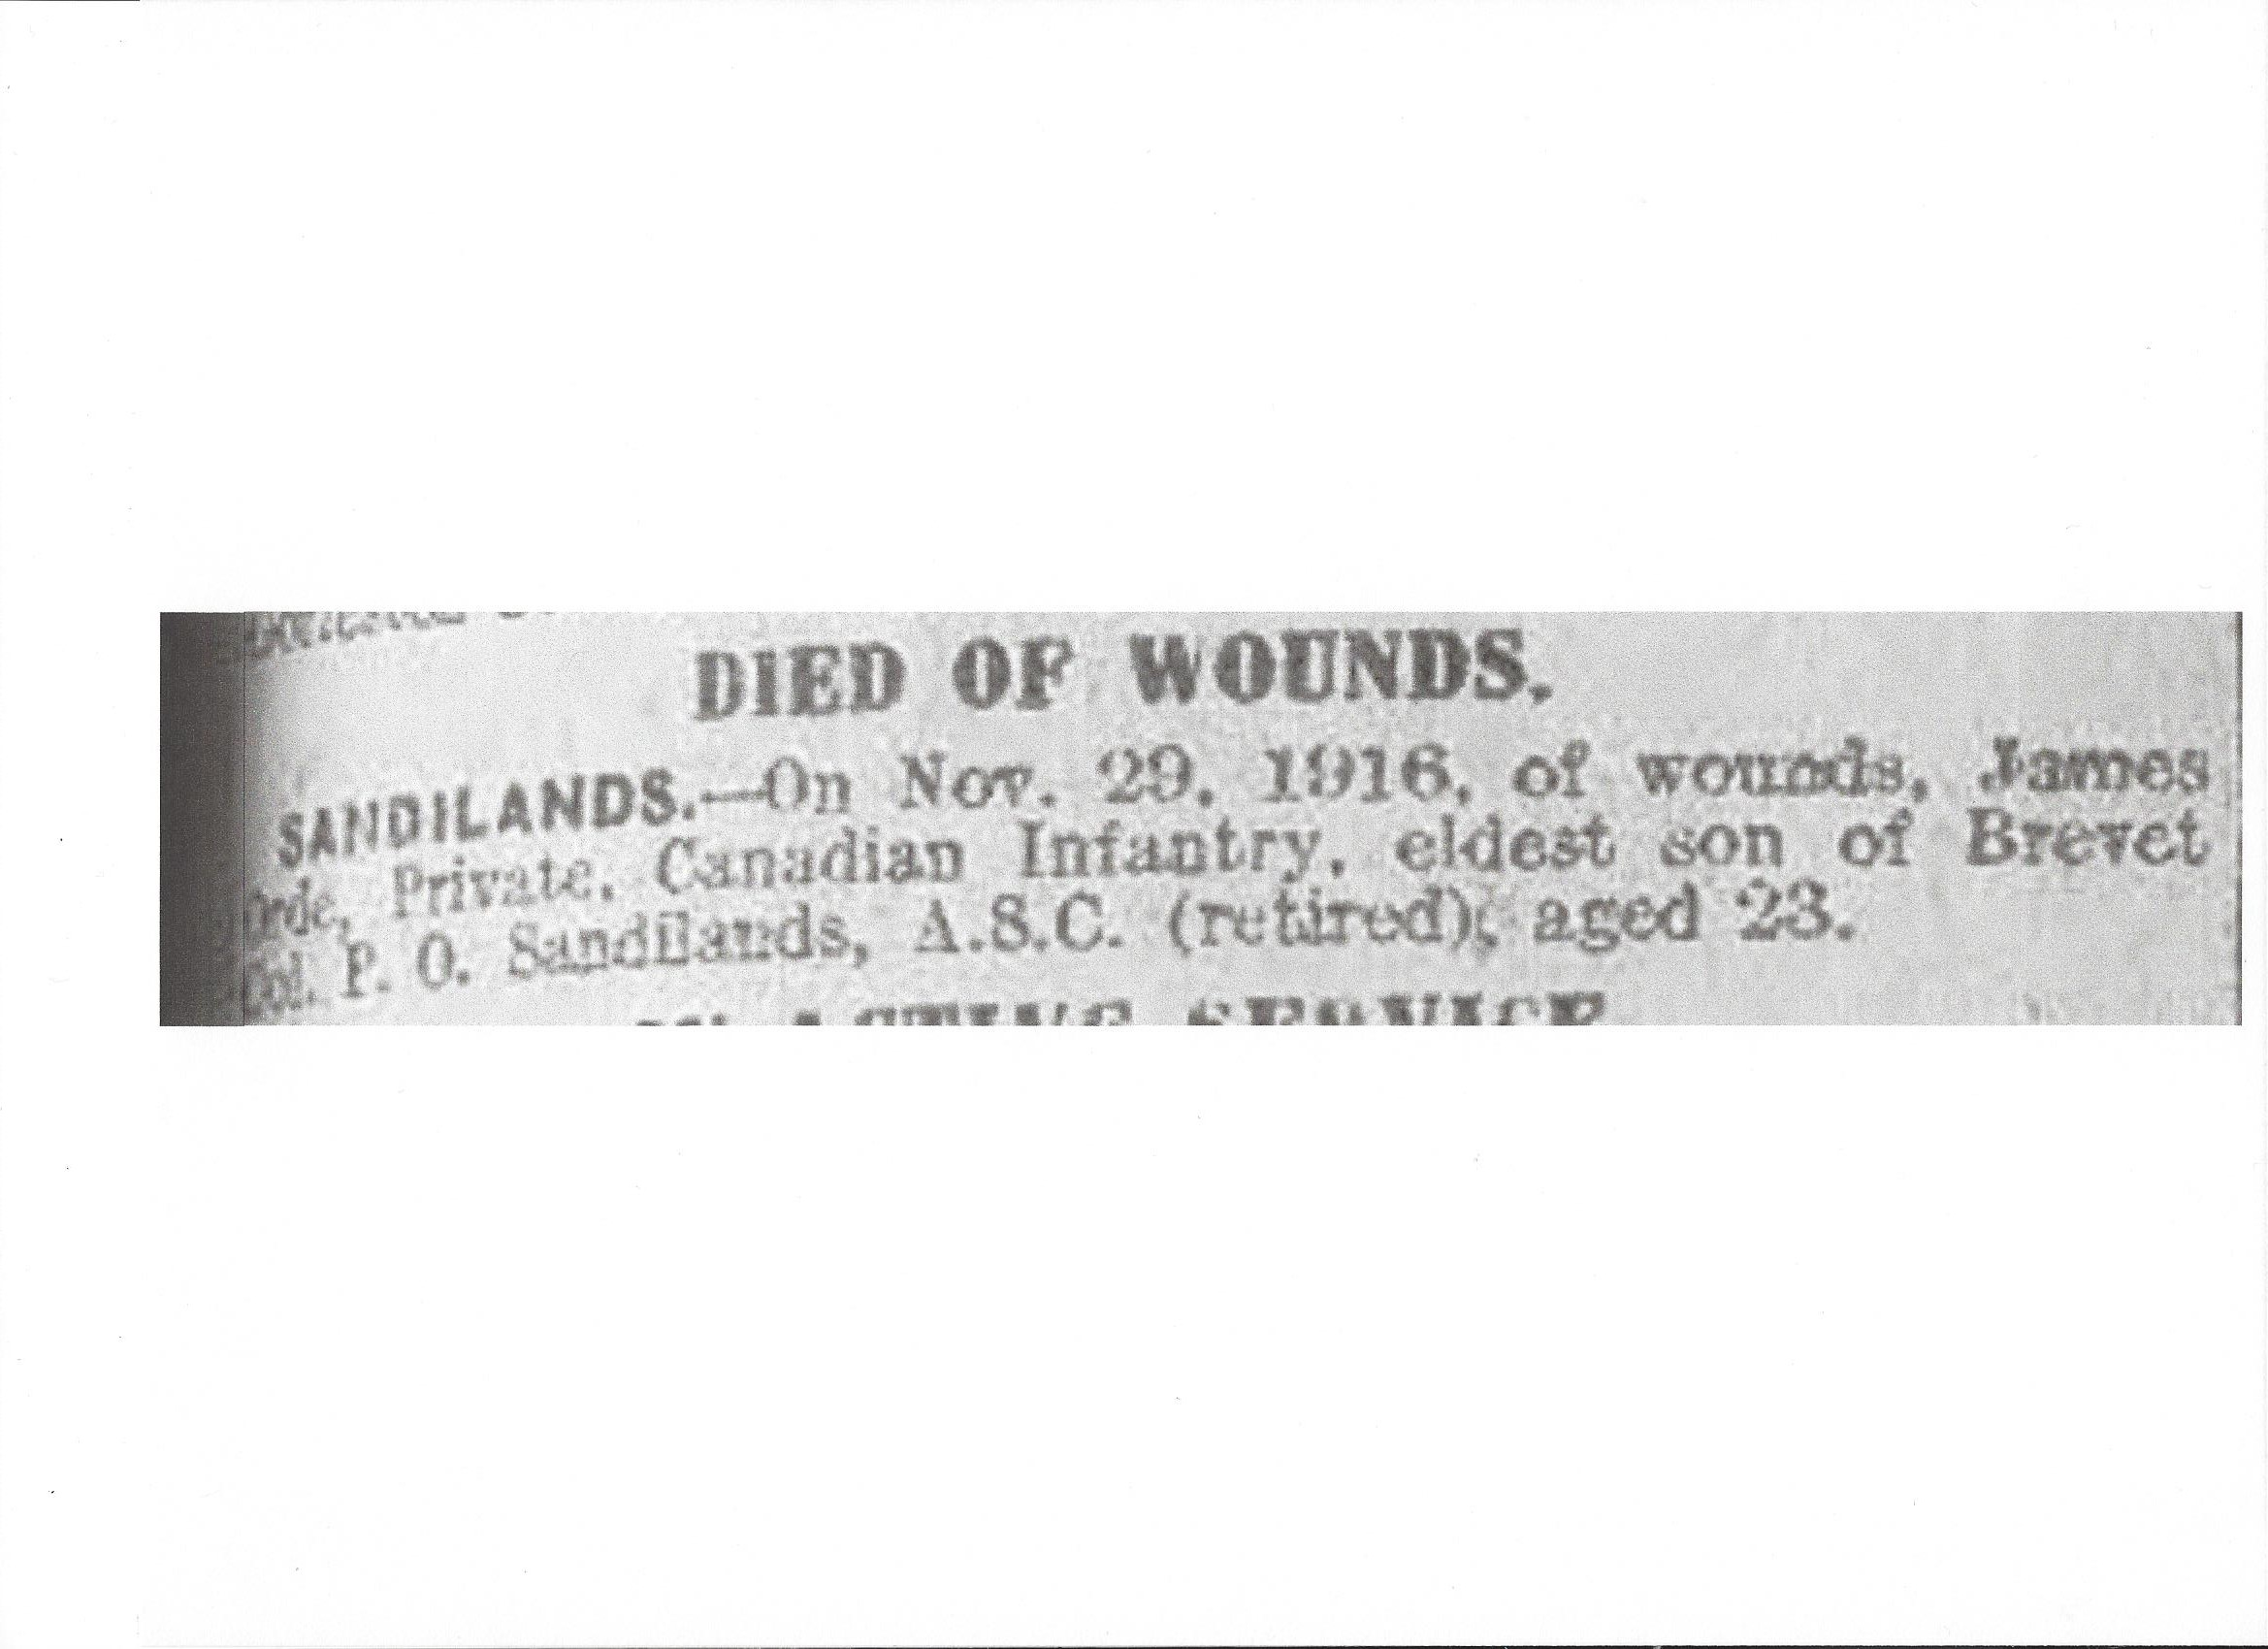 Newspaper Clipping– Newspaper clipping from Daily Telegraph of January 25, 1917. Image taken from web address of http://www.telegraph.co.uk/news/ww1-archive/12214131/Daily-Telegraph-January-25-1917.html